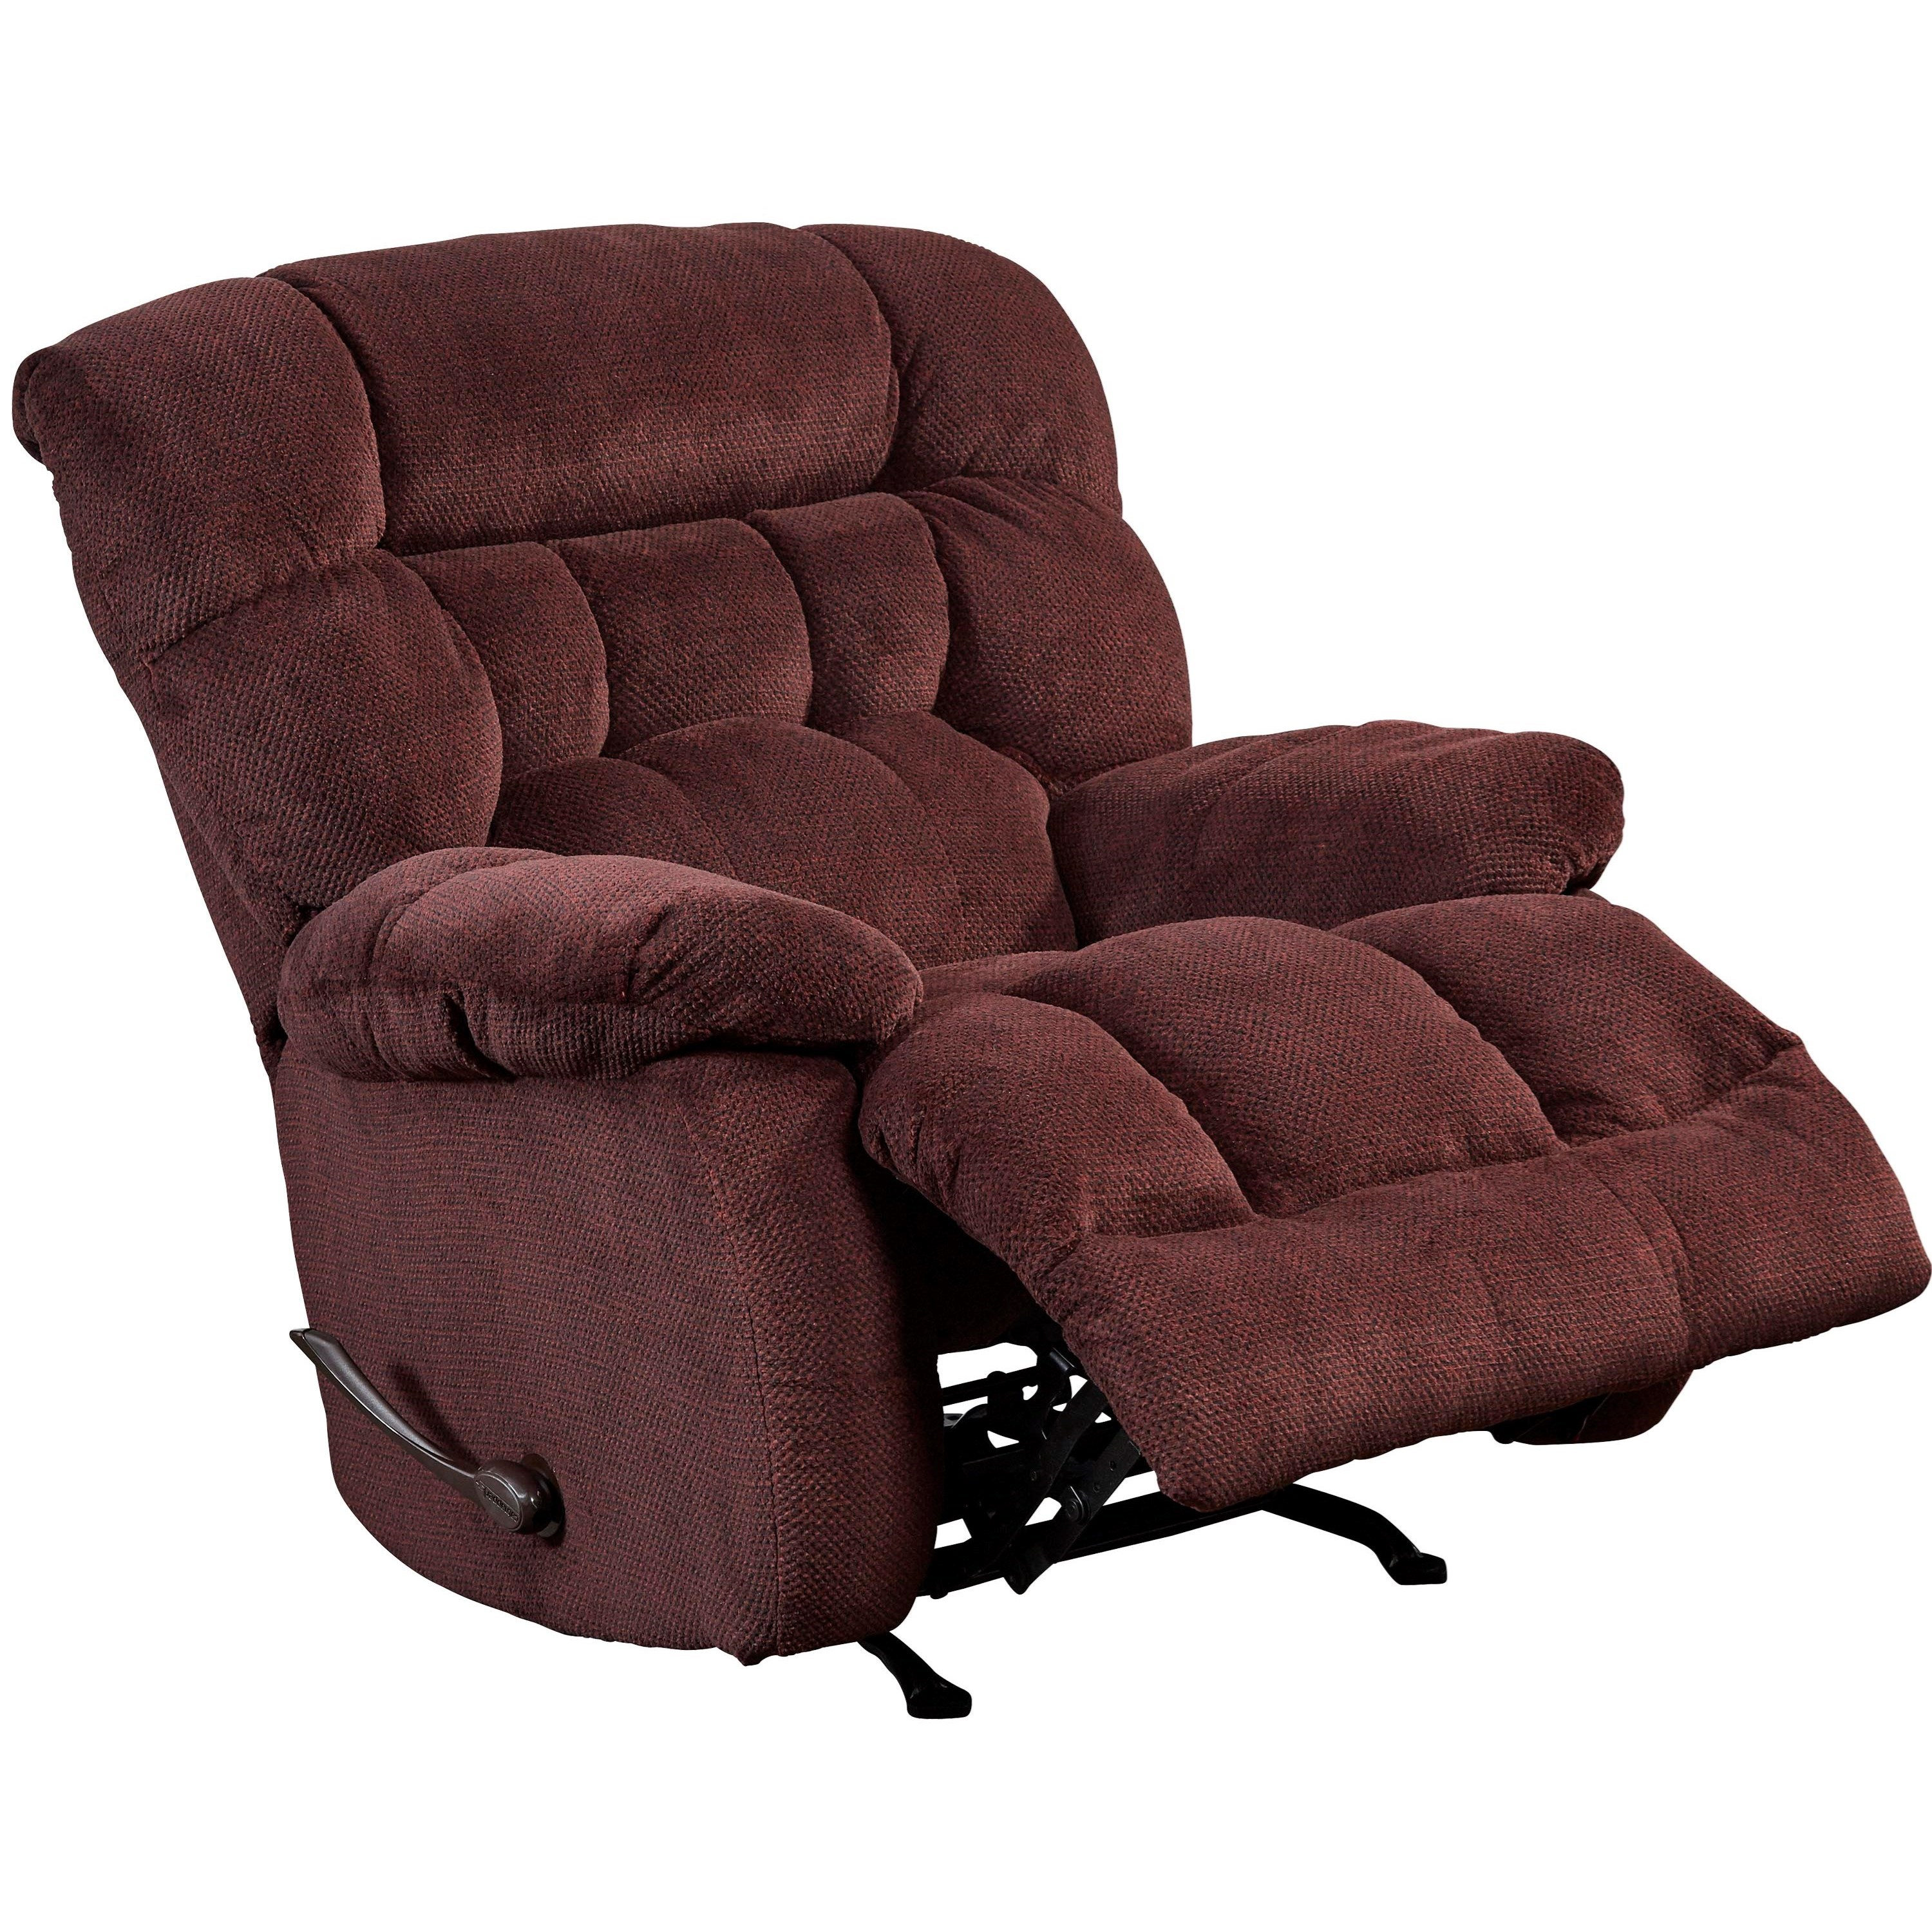 Daly Swivel Glider Recliner  sc 1 st  Wolf Furniture : swivel for recliner - islam-shia.org